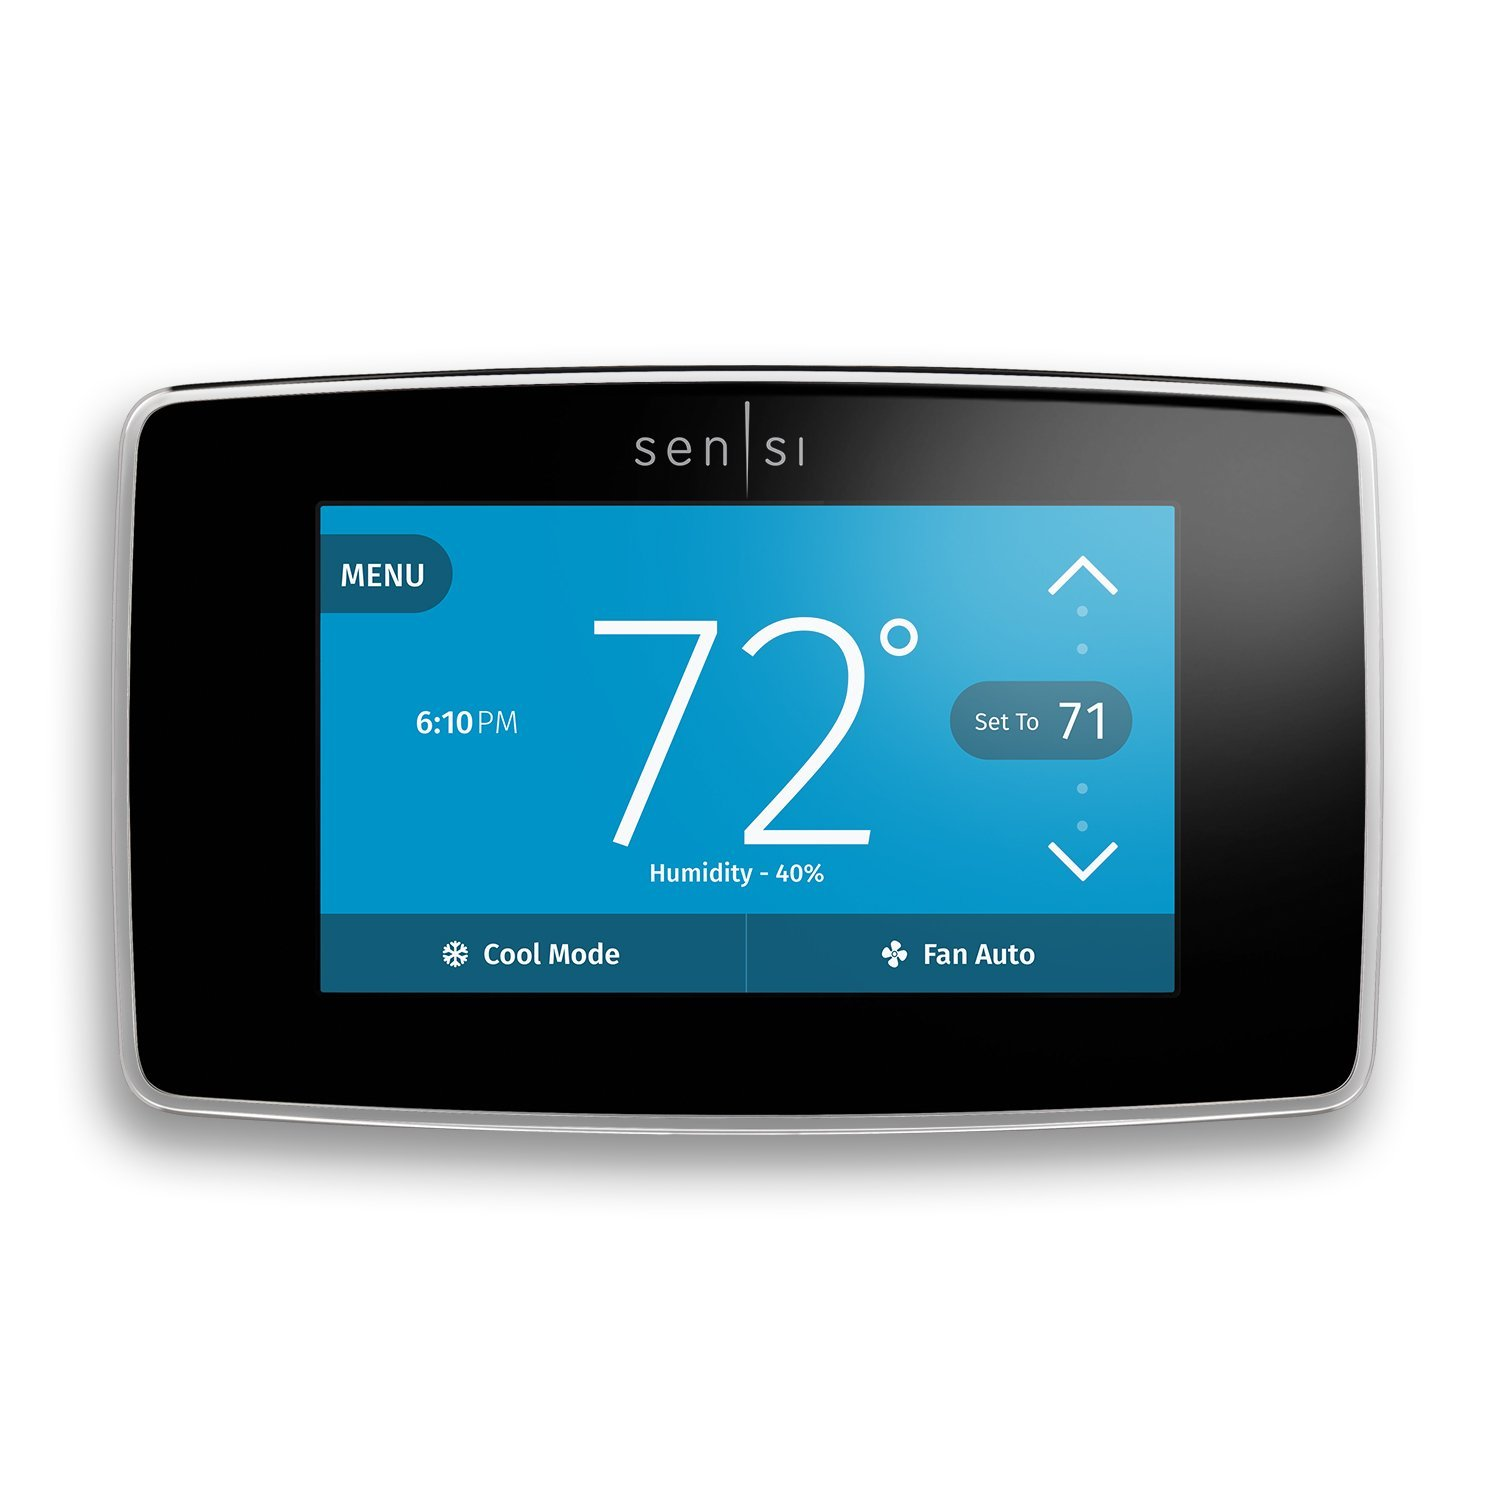 Heat pump thermostat with touchscreen and WiFi